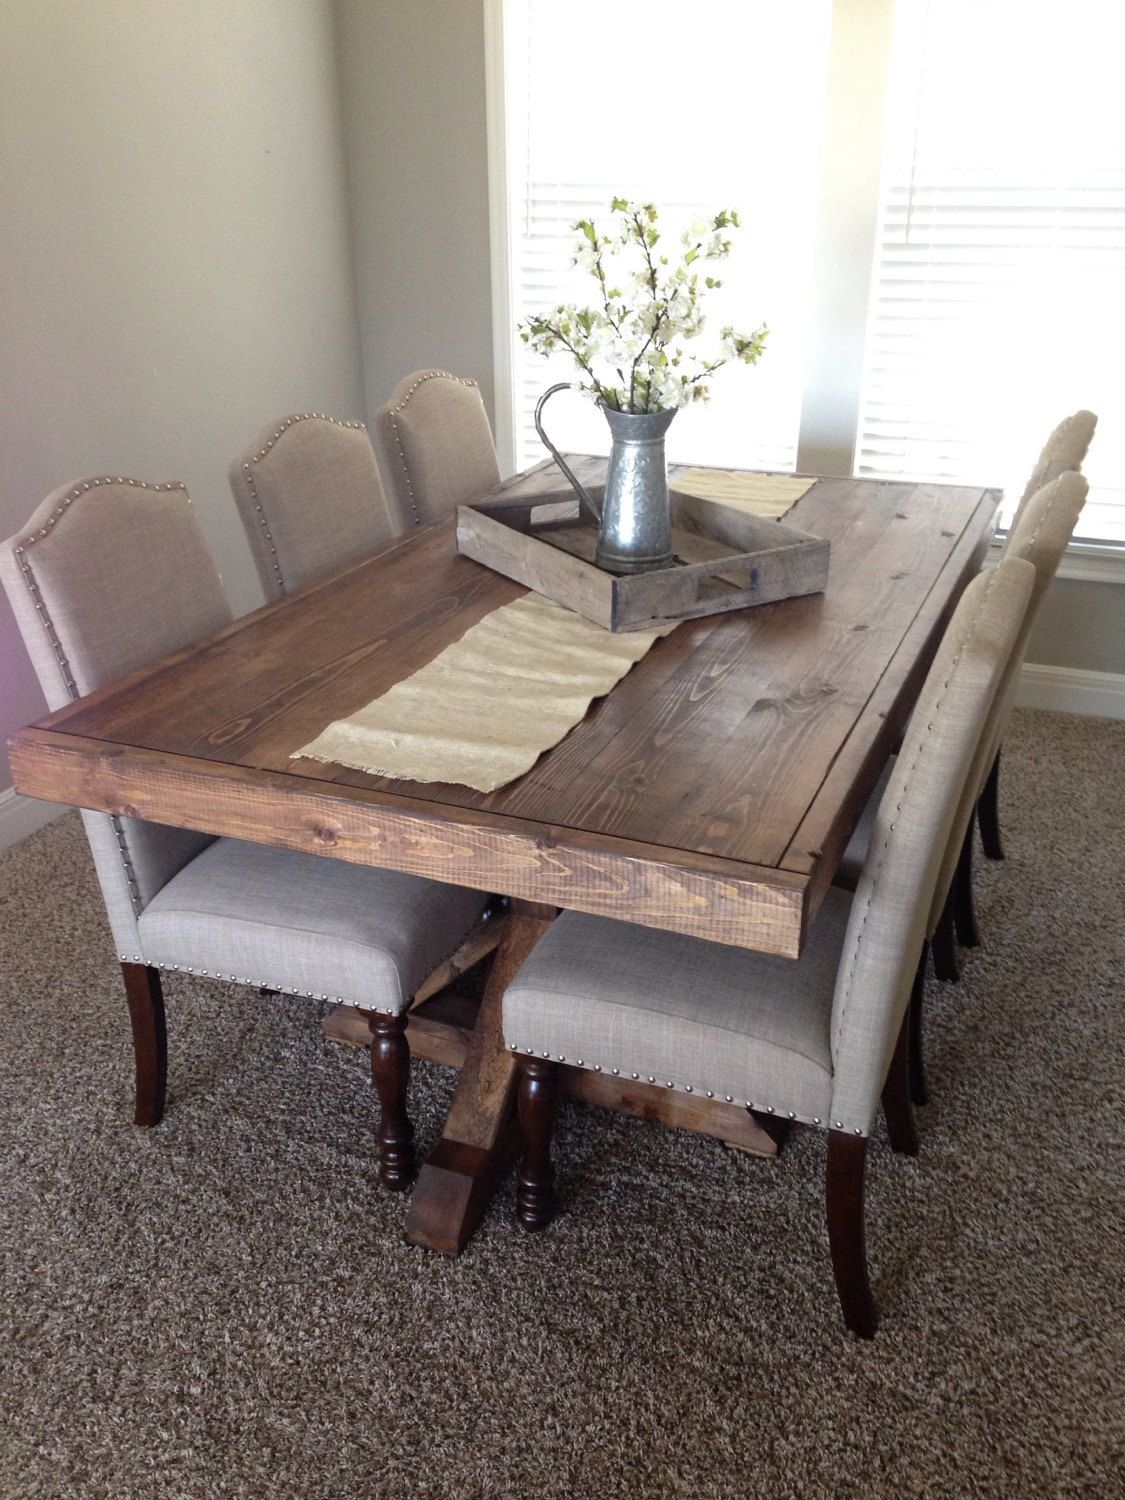 40+ DIY Farmhouse Table Plans The Best Dining Room Tables Youu0027ll Love